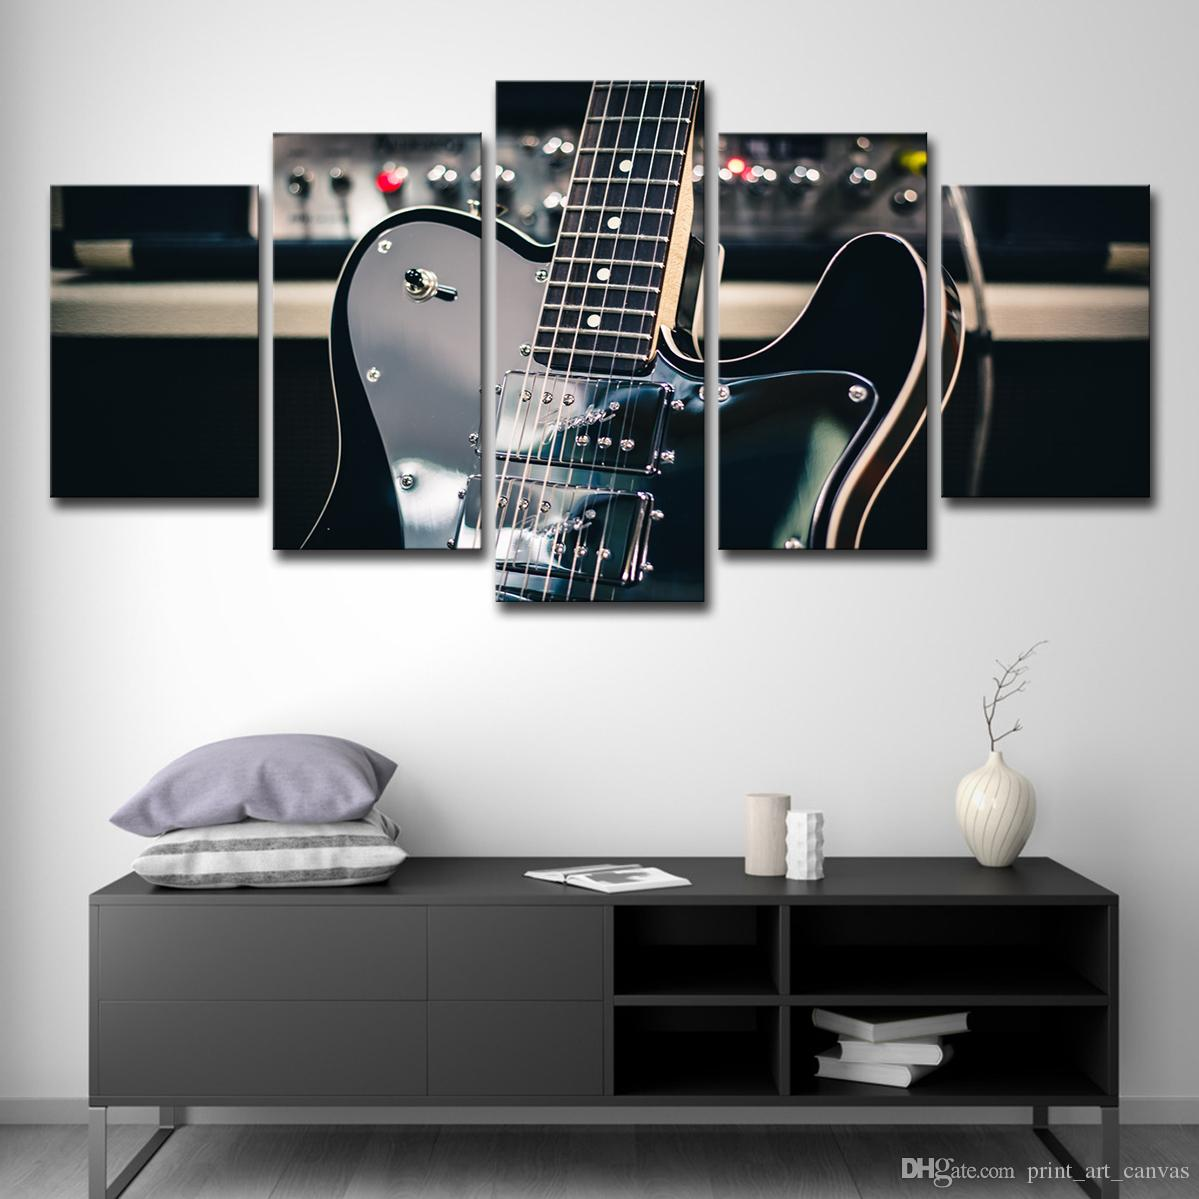 Home Decoration Wall Art Pictures Posters 5 Panel Black Guitar Musical Instrument Living Room HD Printed Modern Painting